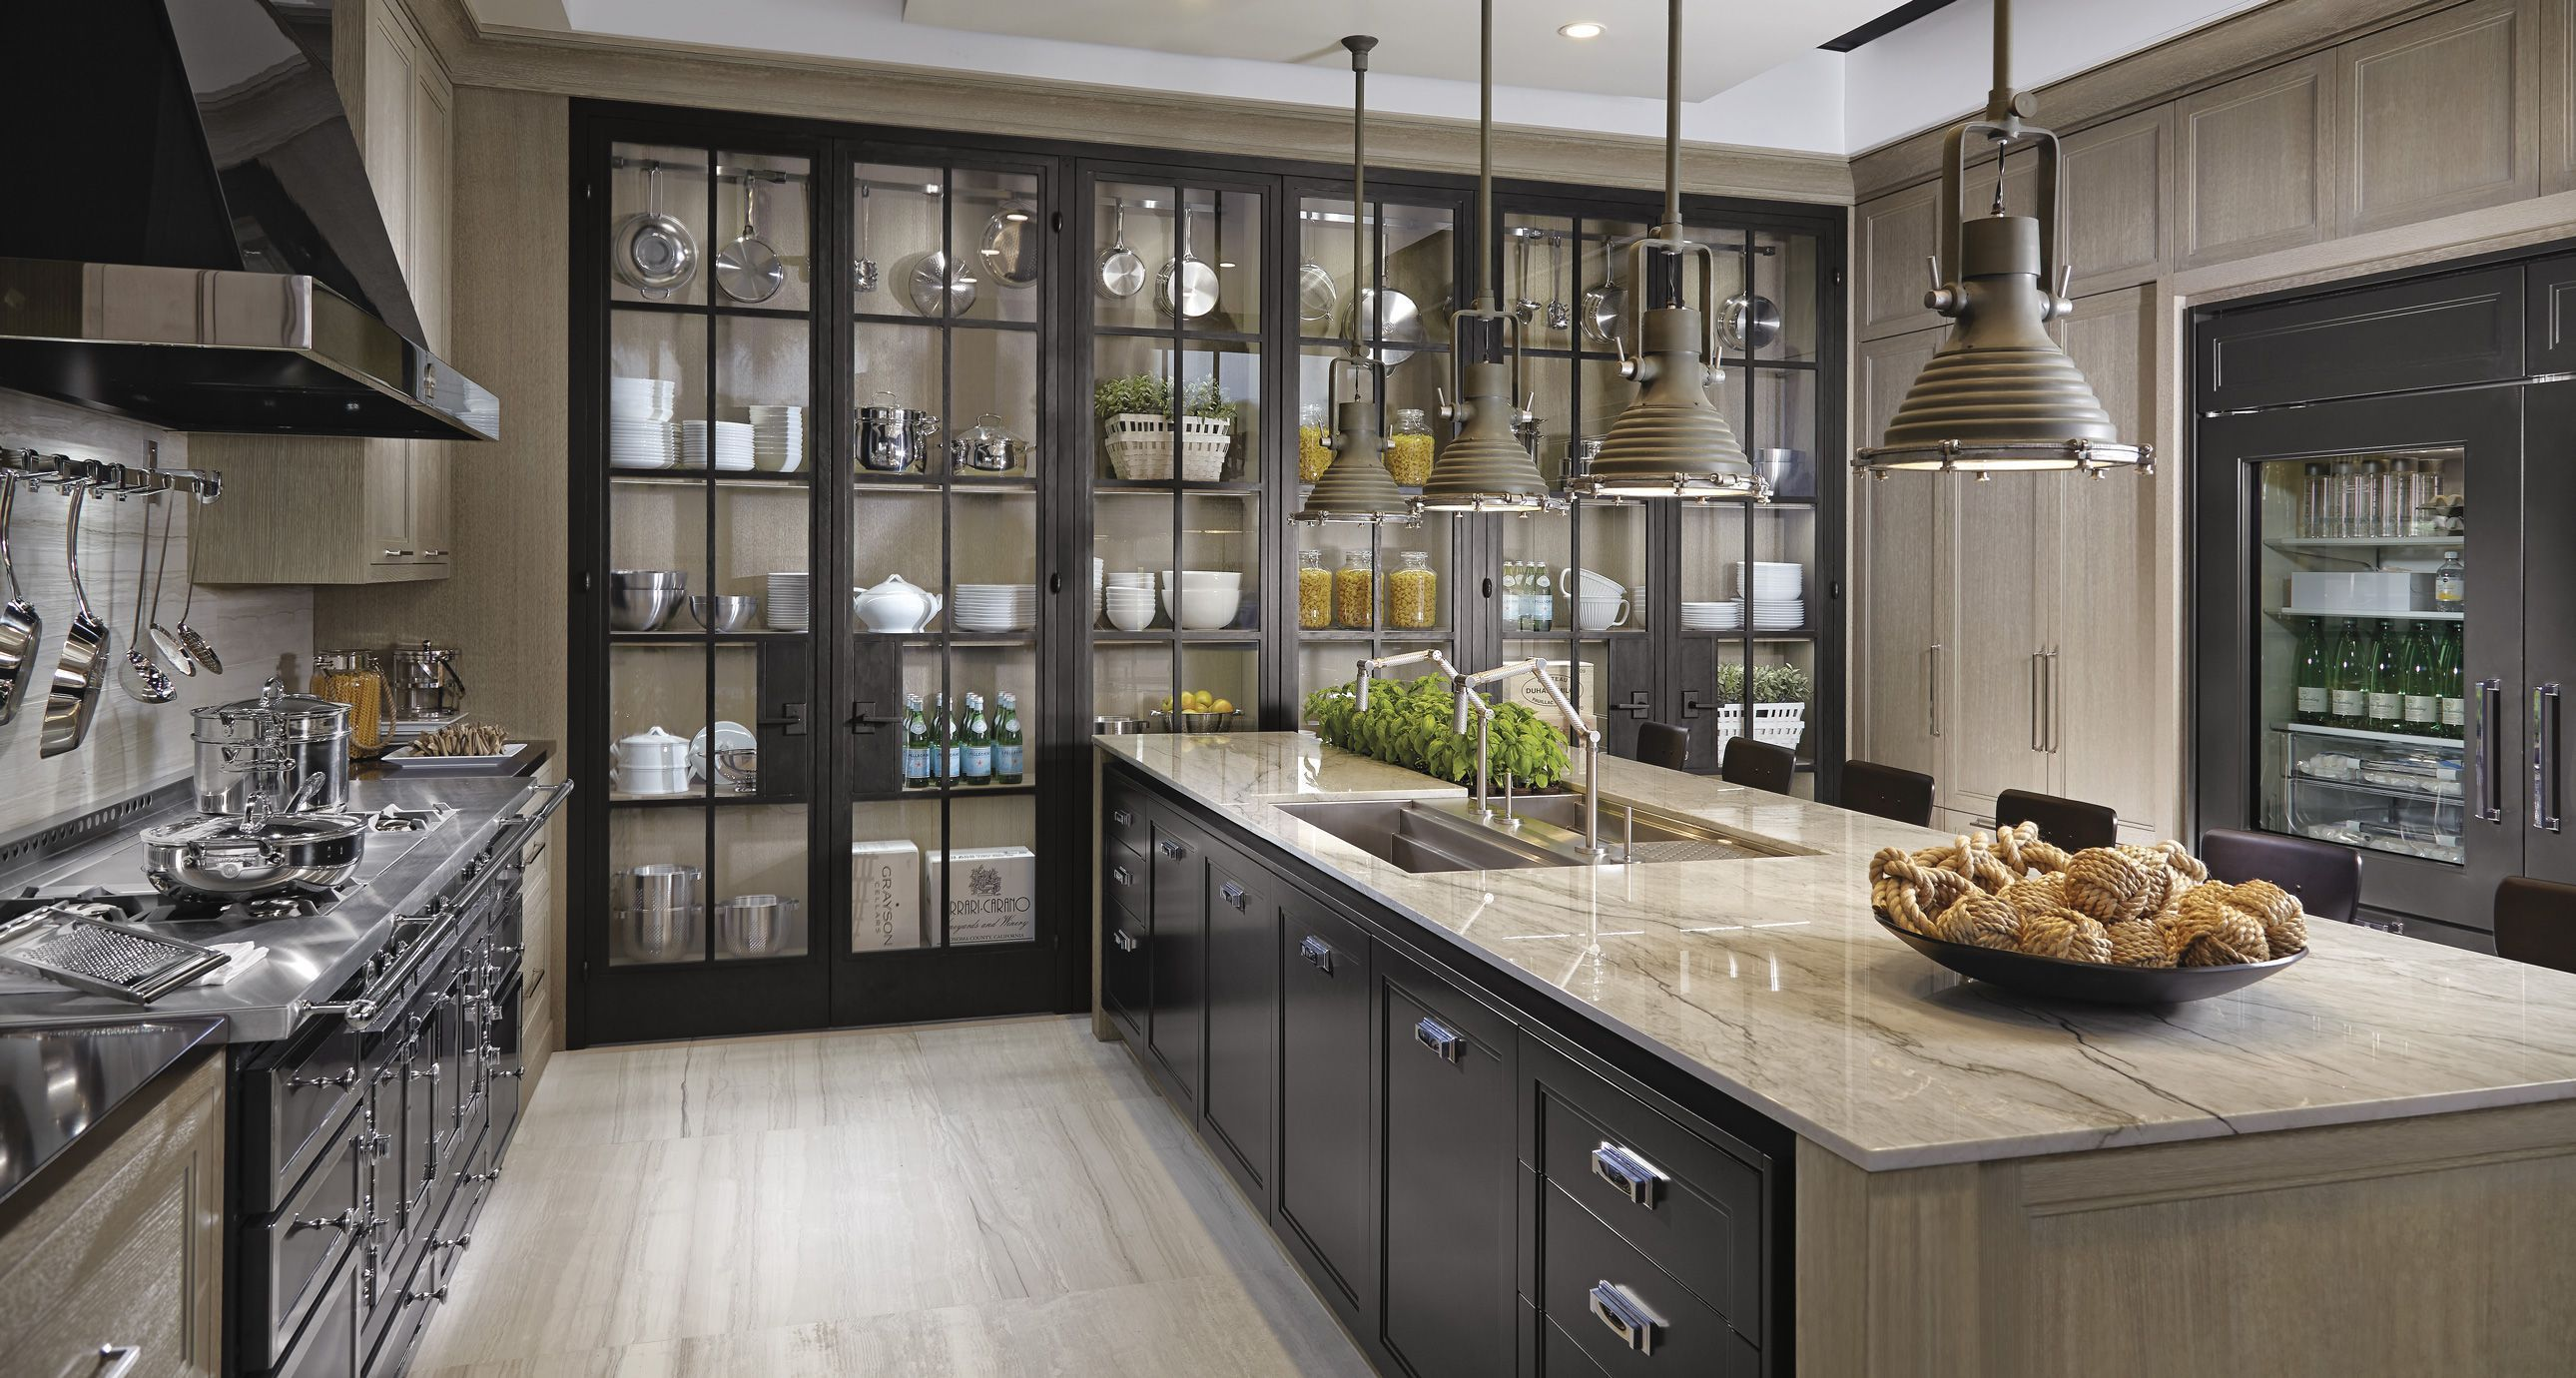 Chic Downsview Kitchens And Fine Custom Cabinetry Manufacturers Of Kitchen Cabinets Customkitchens Kitchencabinetry